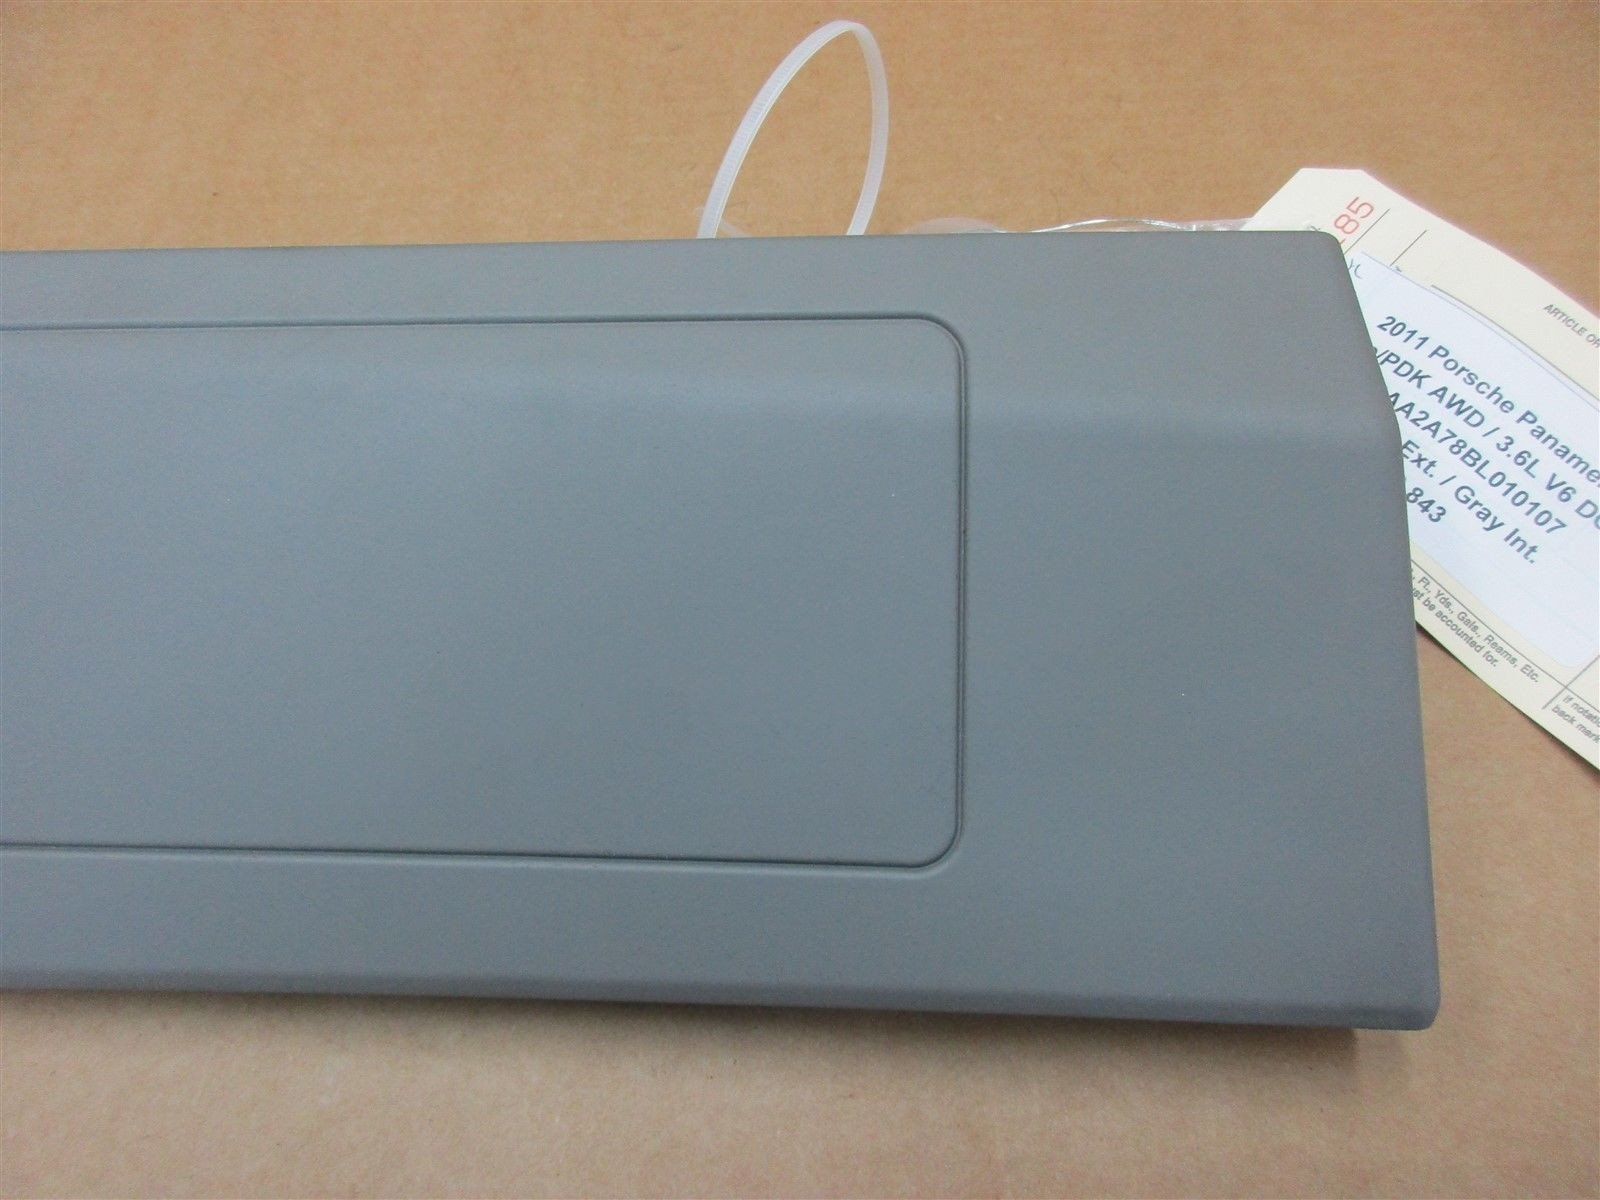 11 Panamera 4 AWD 970 Porsche R Gray DASH BOARD AIR BAG 97080306204 79,843